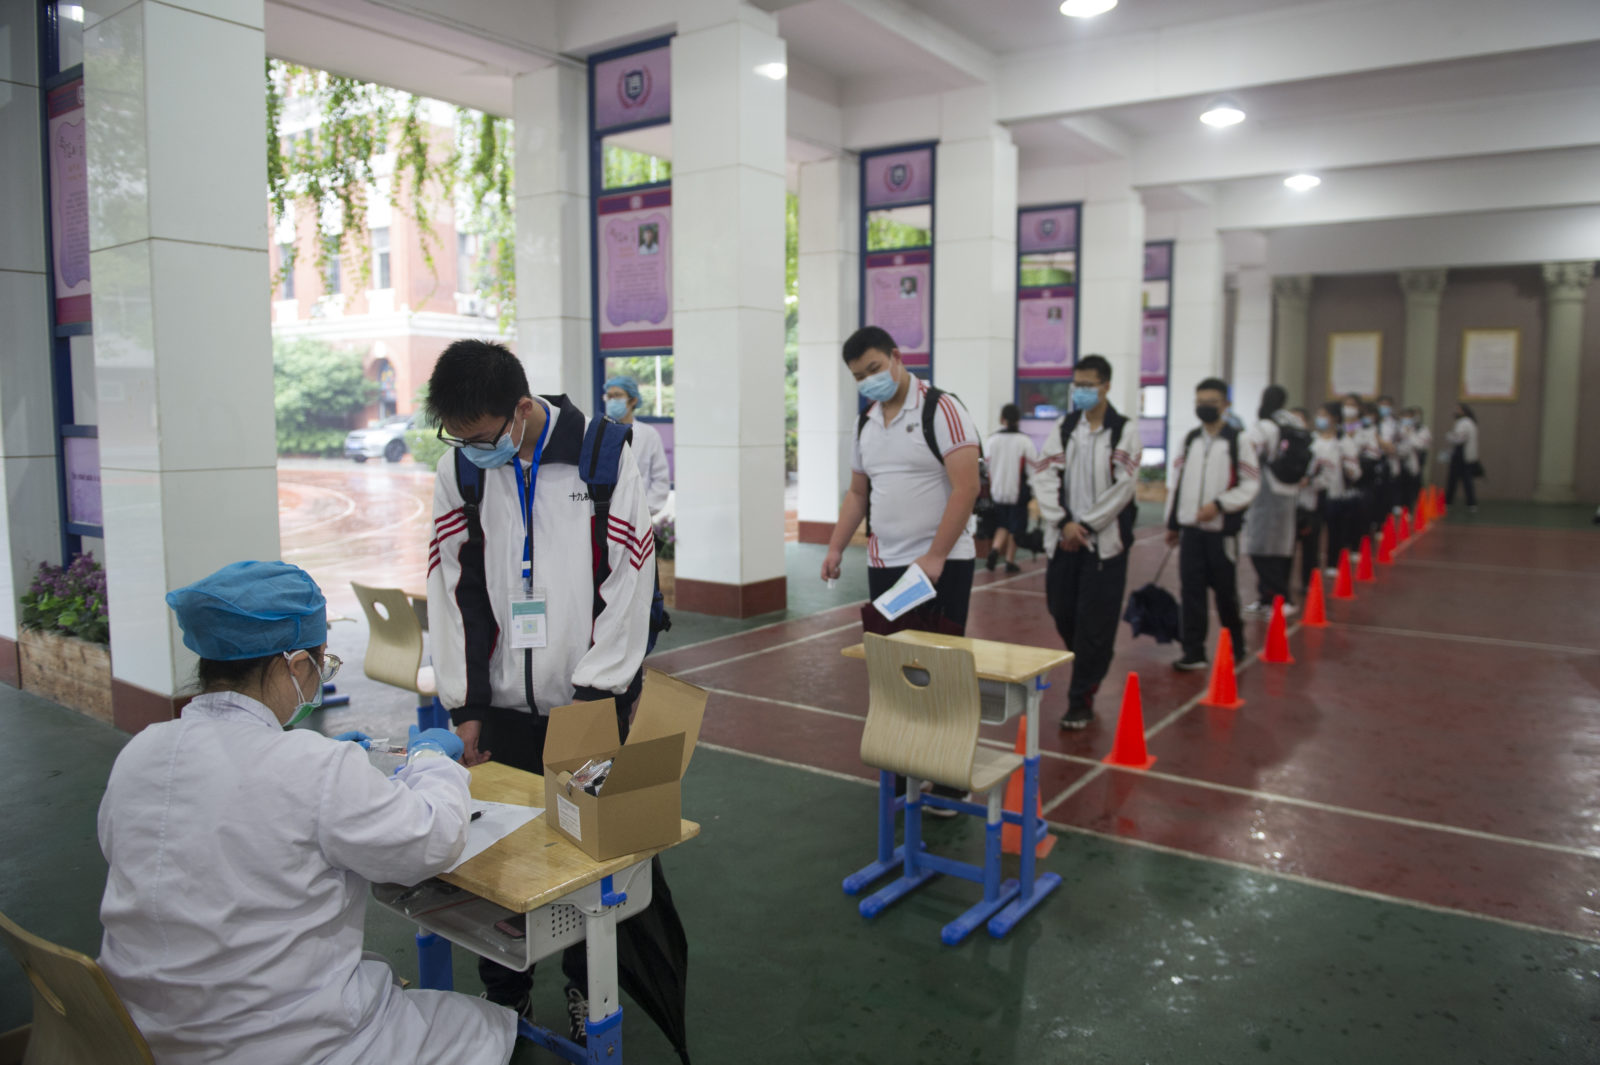 China: Wuhan tests almost 10M citizens in 10 days